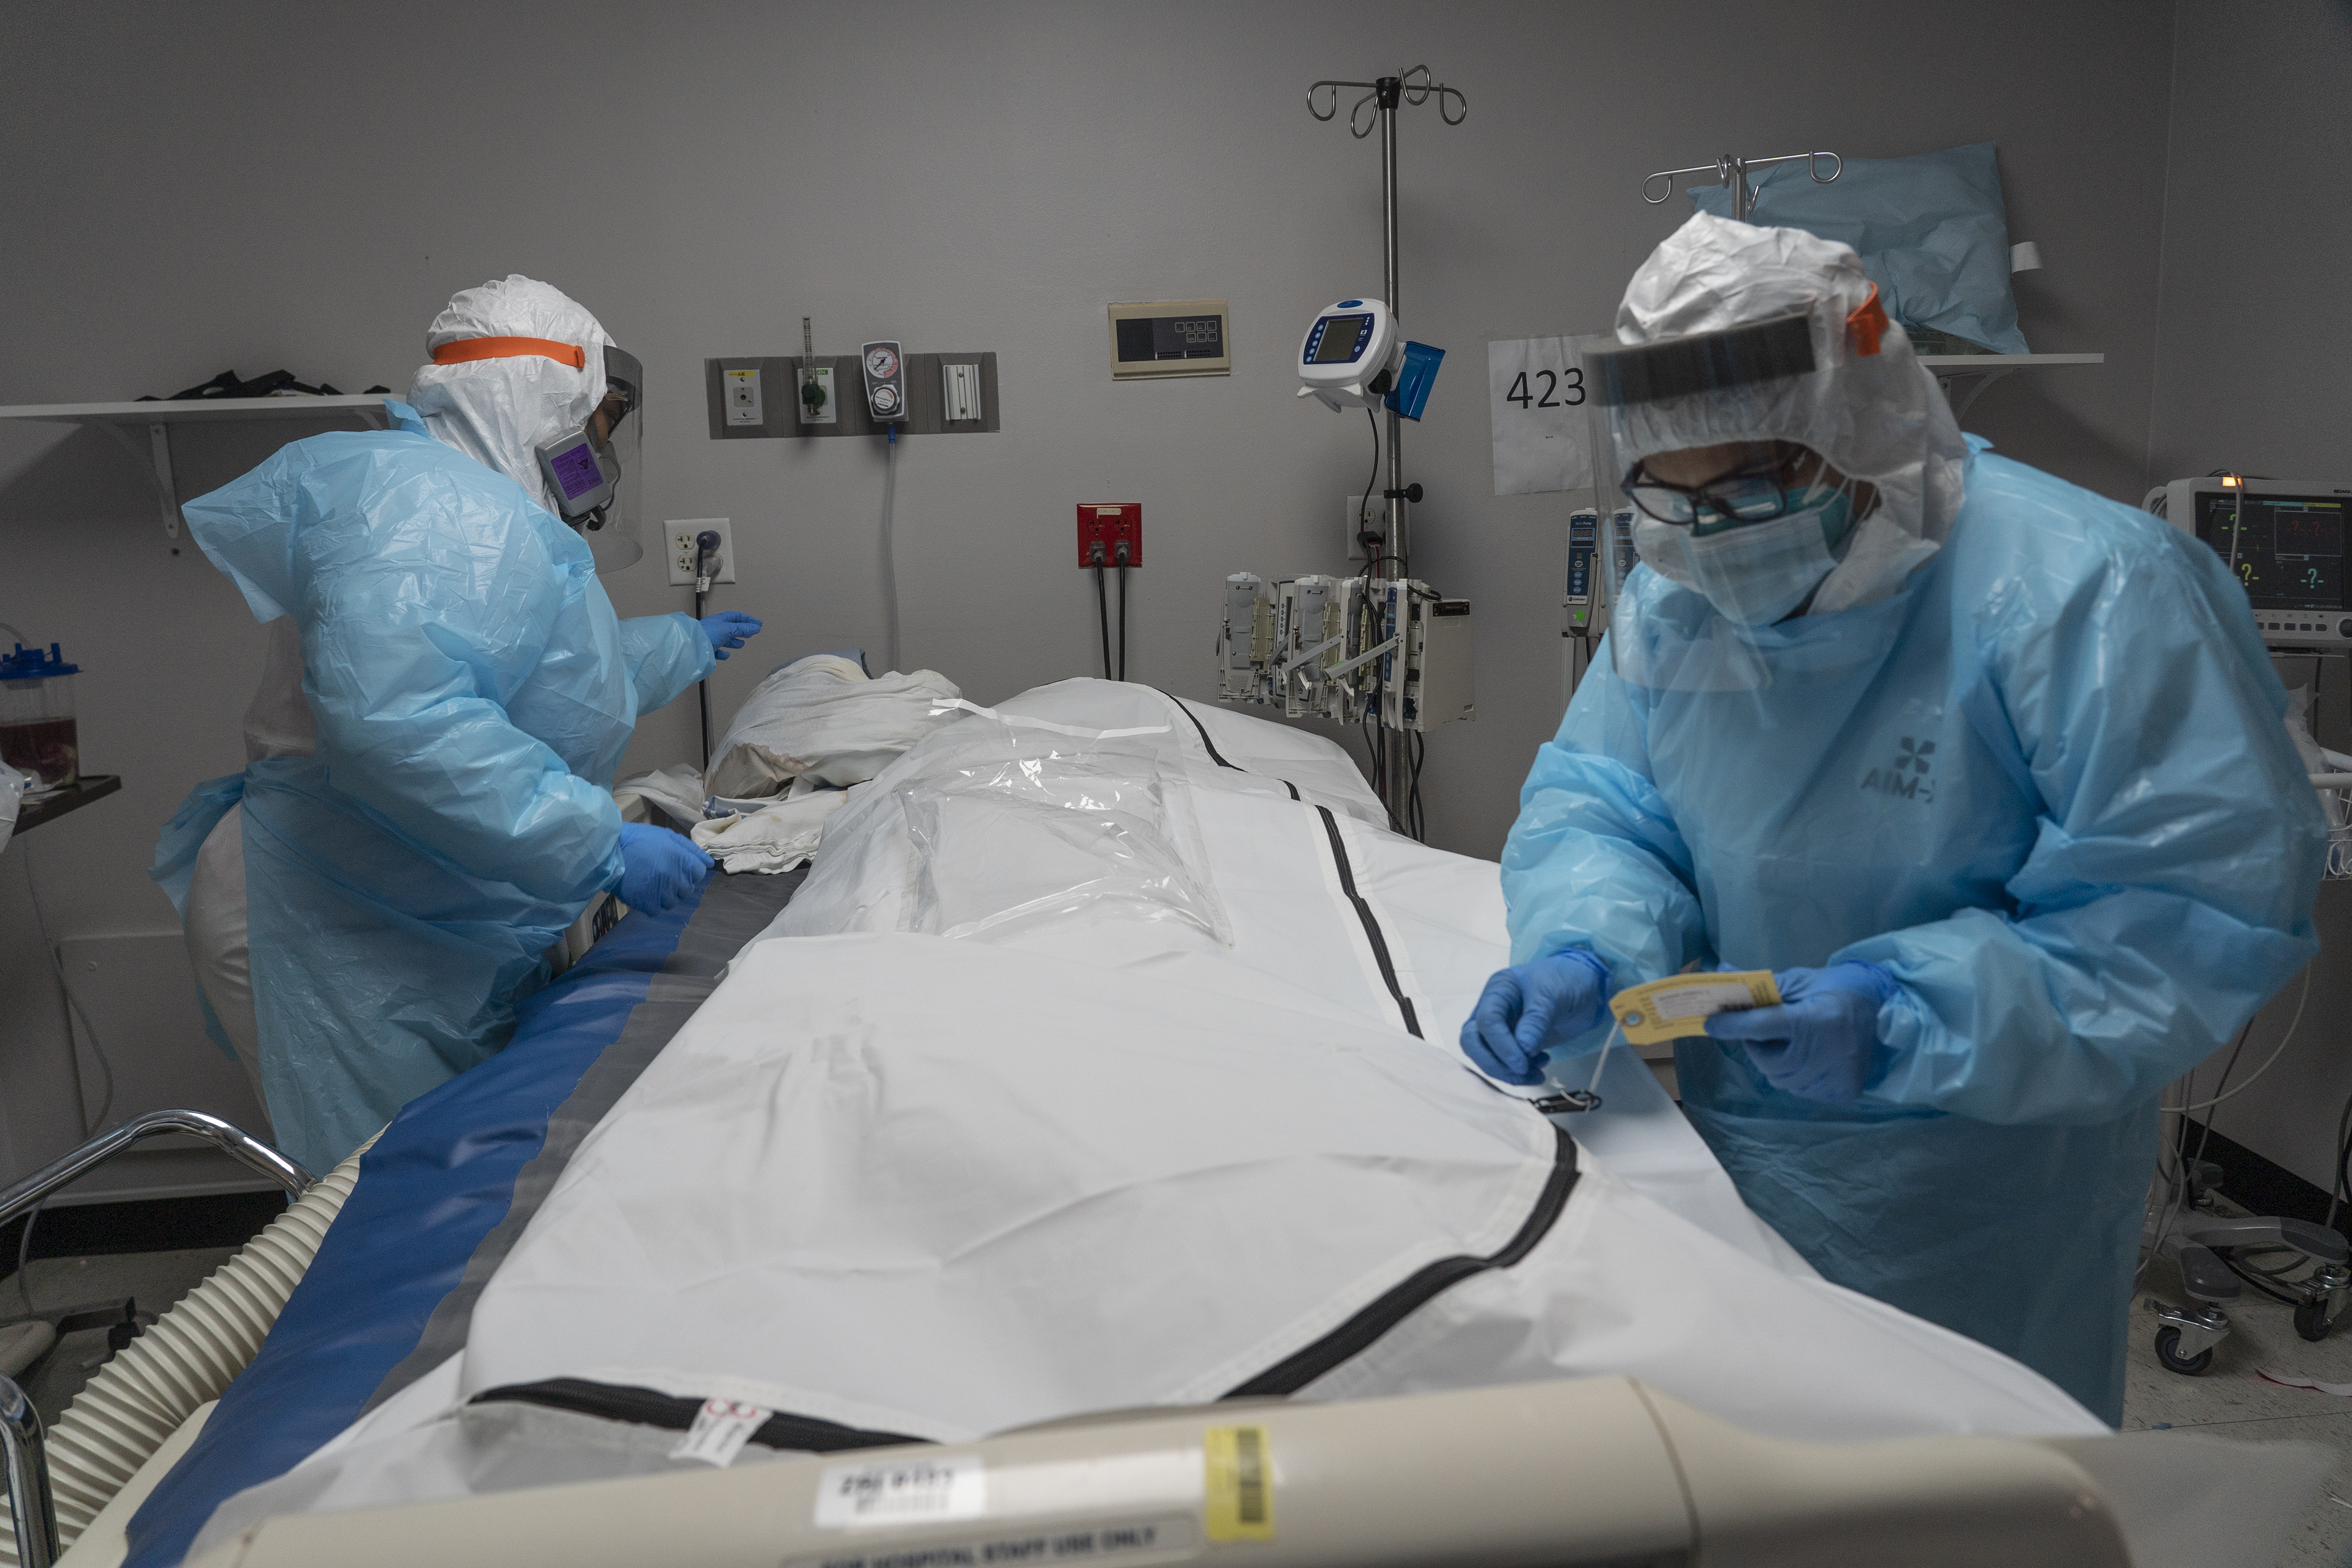 Medical staff members tends to a deceased COVID-19 patient's body in the coronavirus intensive care unit at the United Memorial Medical Center in Houston, Texas, on November 25.